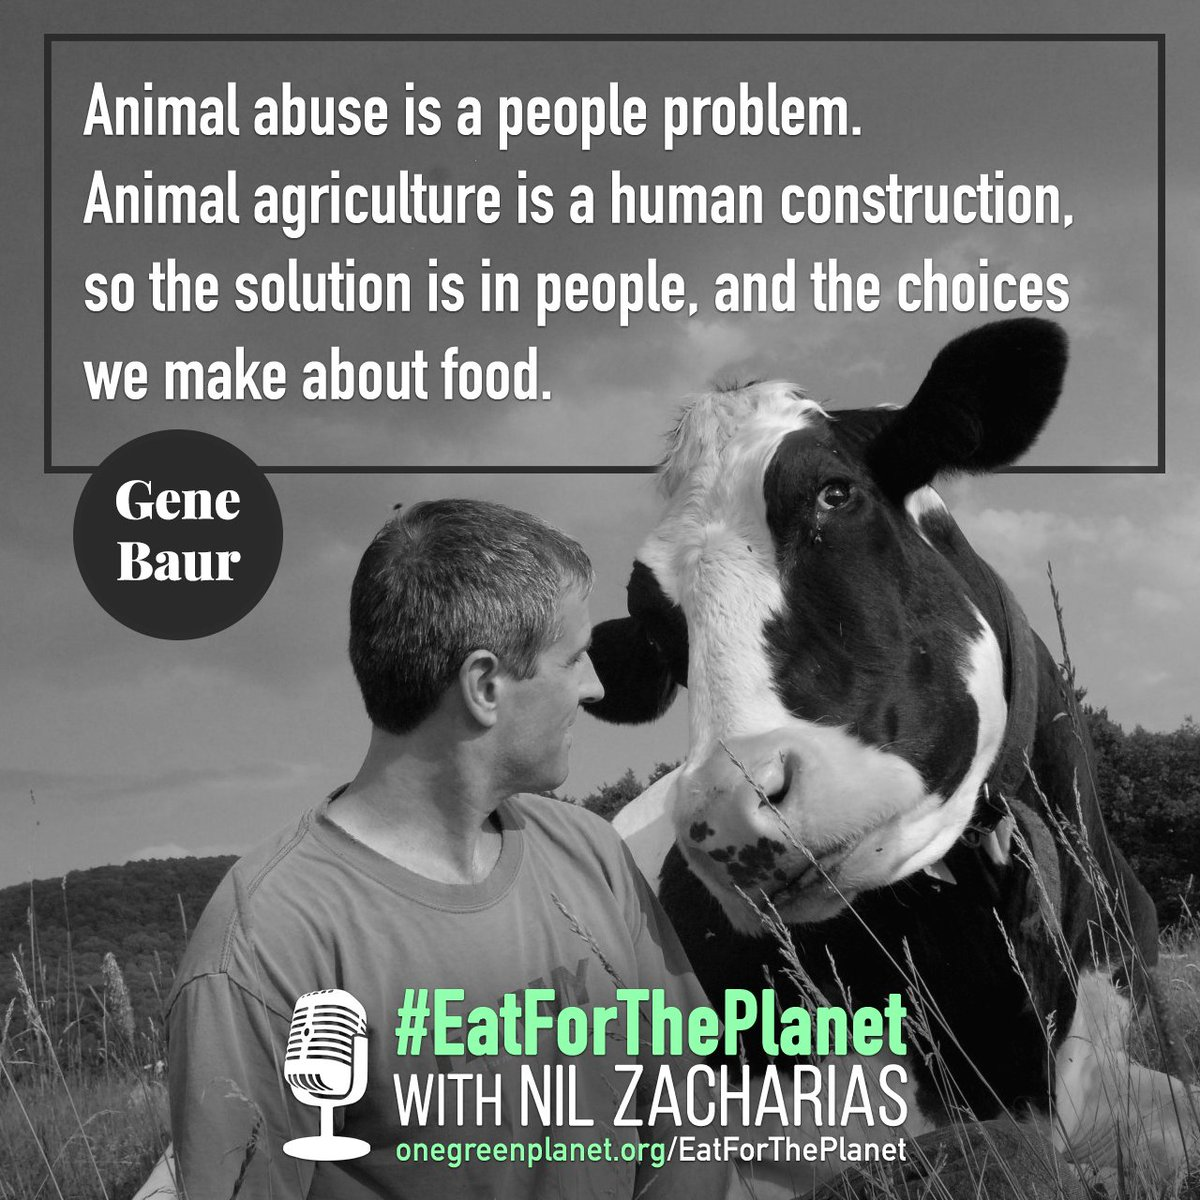 Gene Baur discusses how we can help people make more humane, just and #sustainable food choices by promoting localized, community-oriented agriculture https://t.co/BJUaEn96bi #EatForThePlanet #Vegan